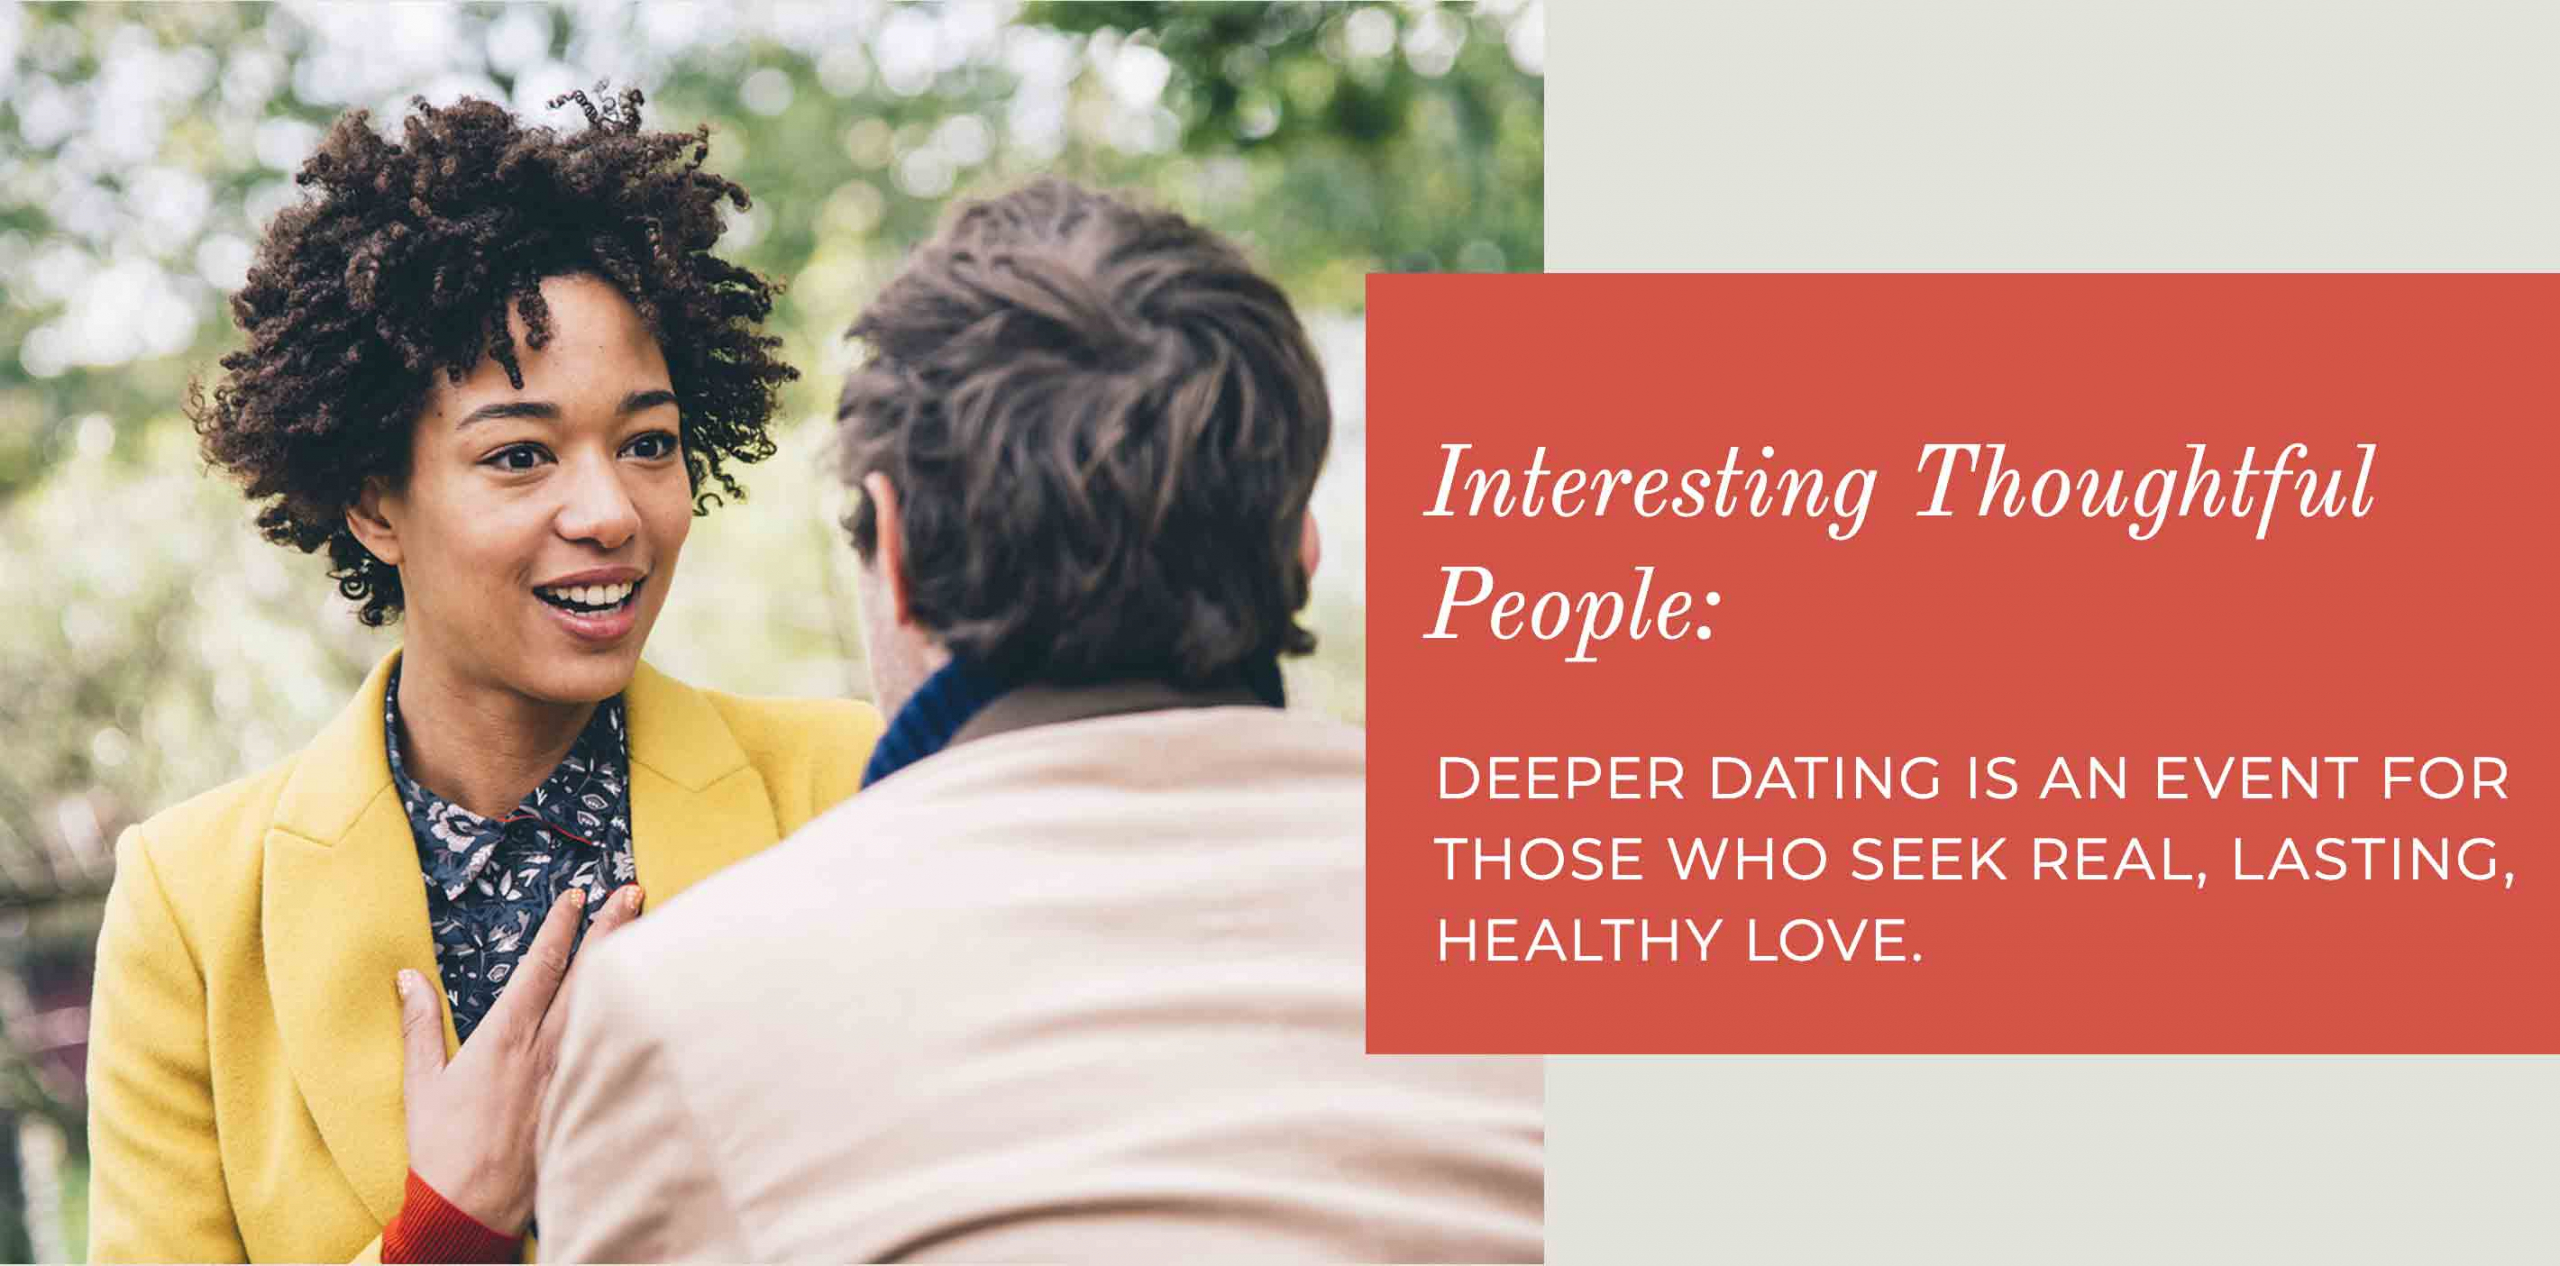 Interesting Thoughtful People: Deeper Dating is an event for those who seek real, lasting, healthy love.